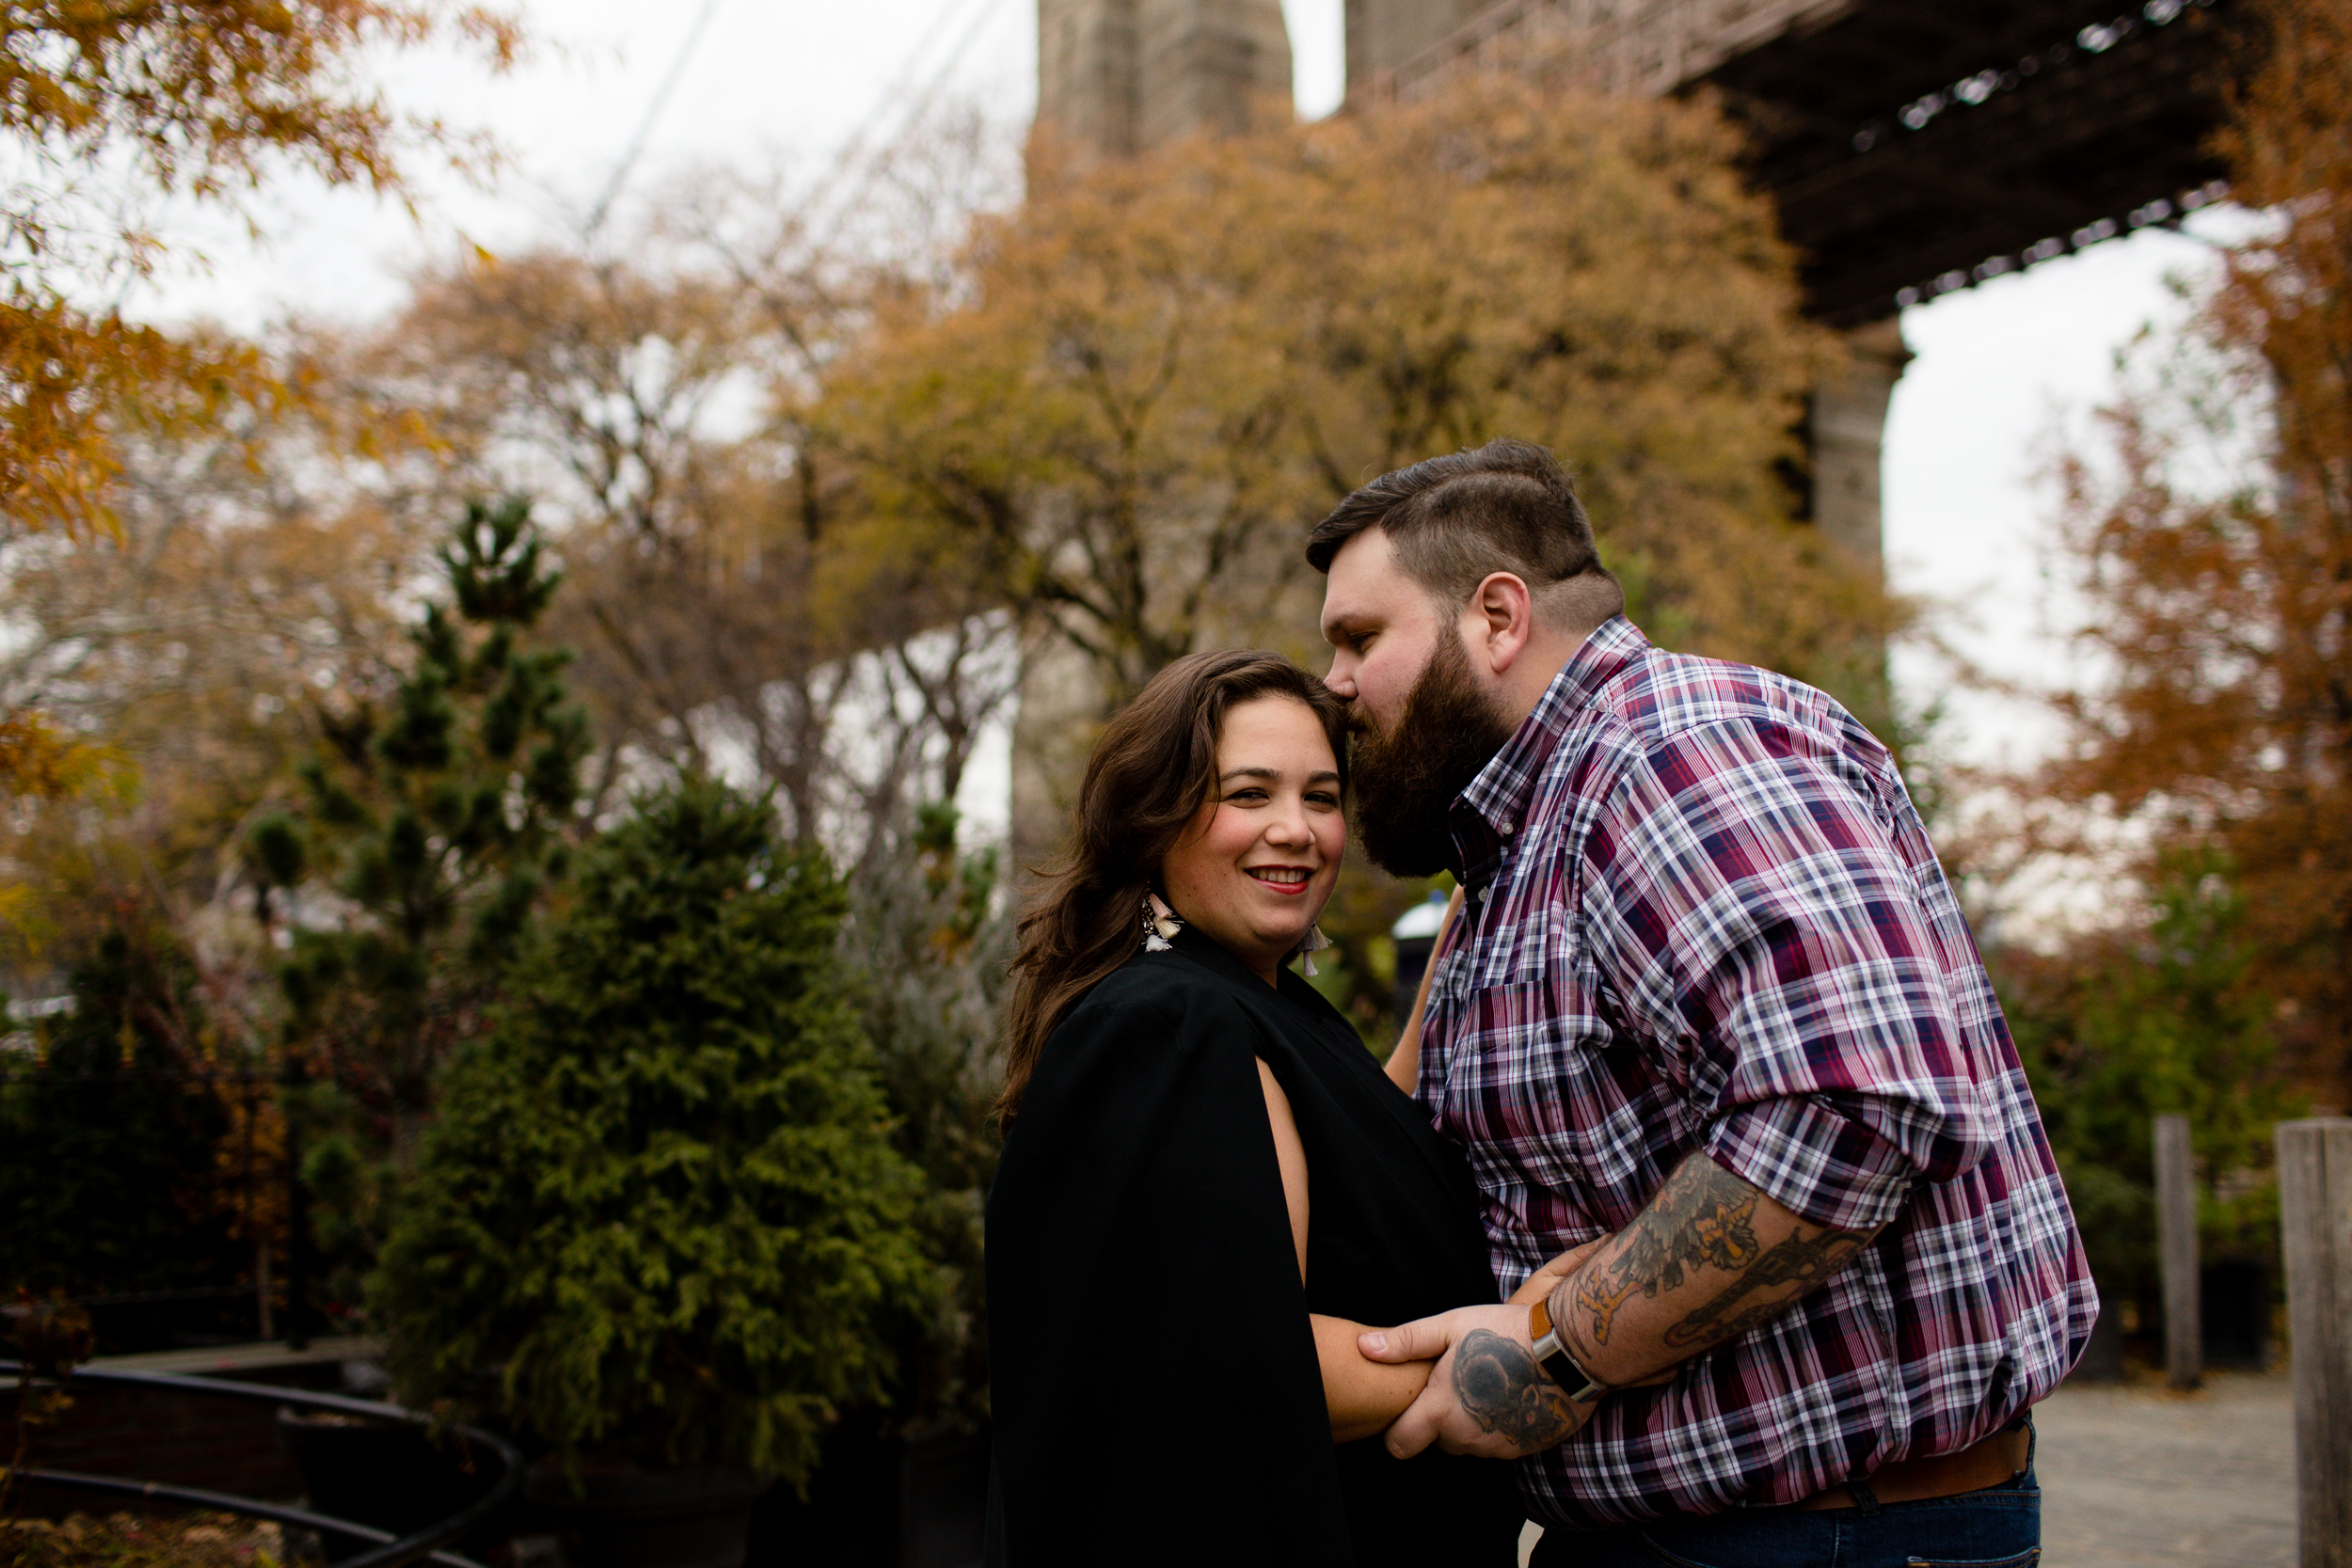 engagement-photography-brooklyn-photographer-5.jpg